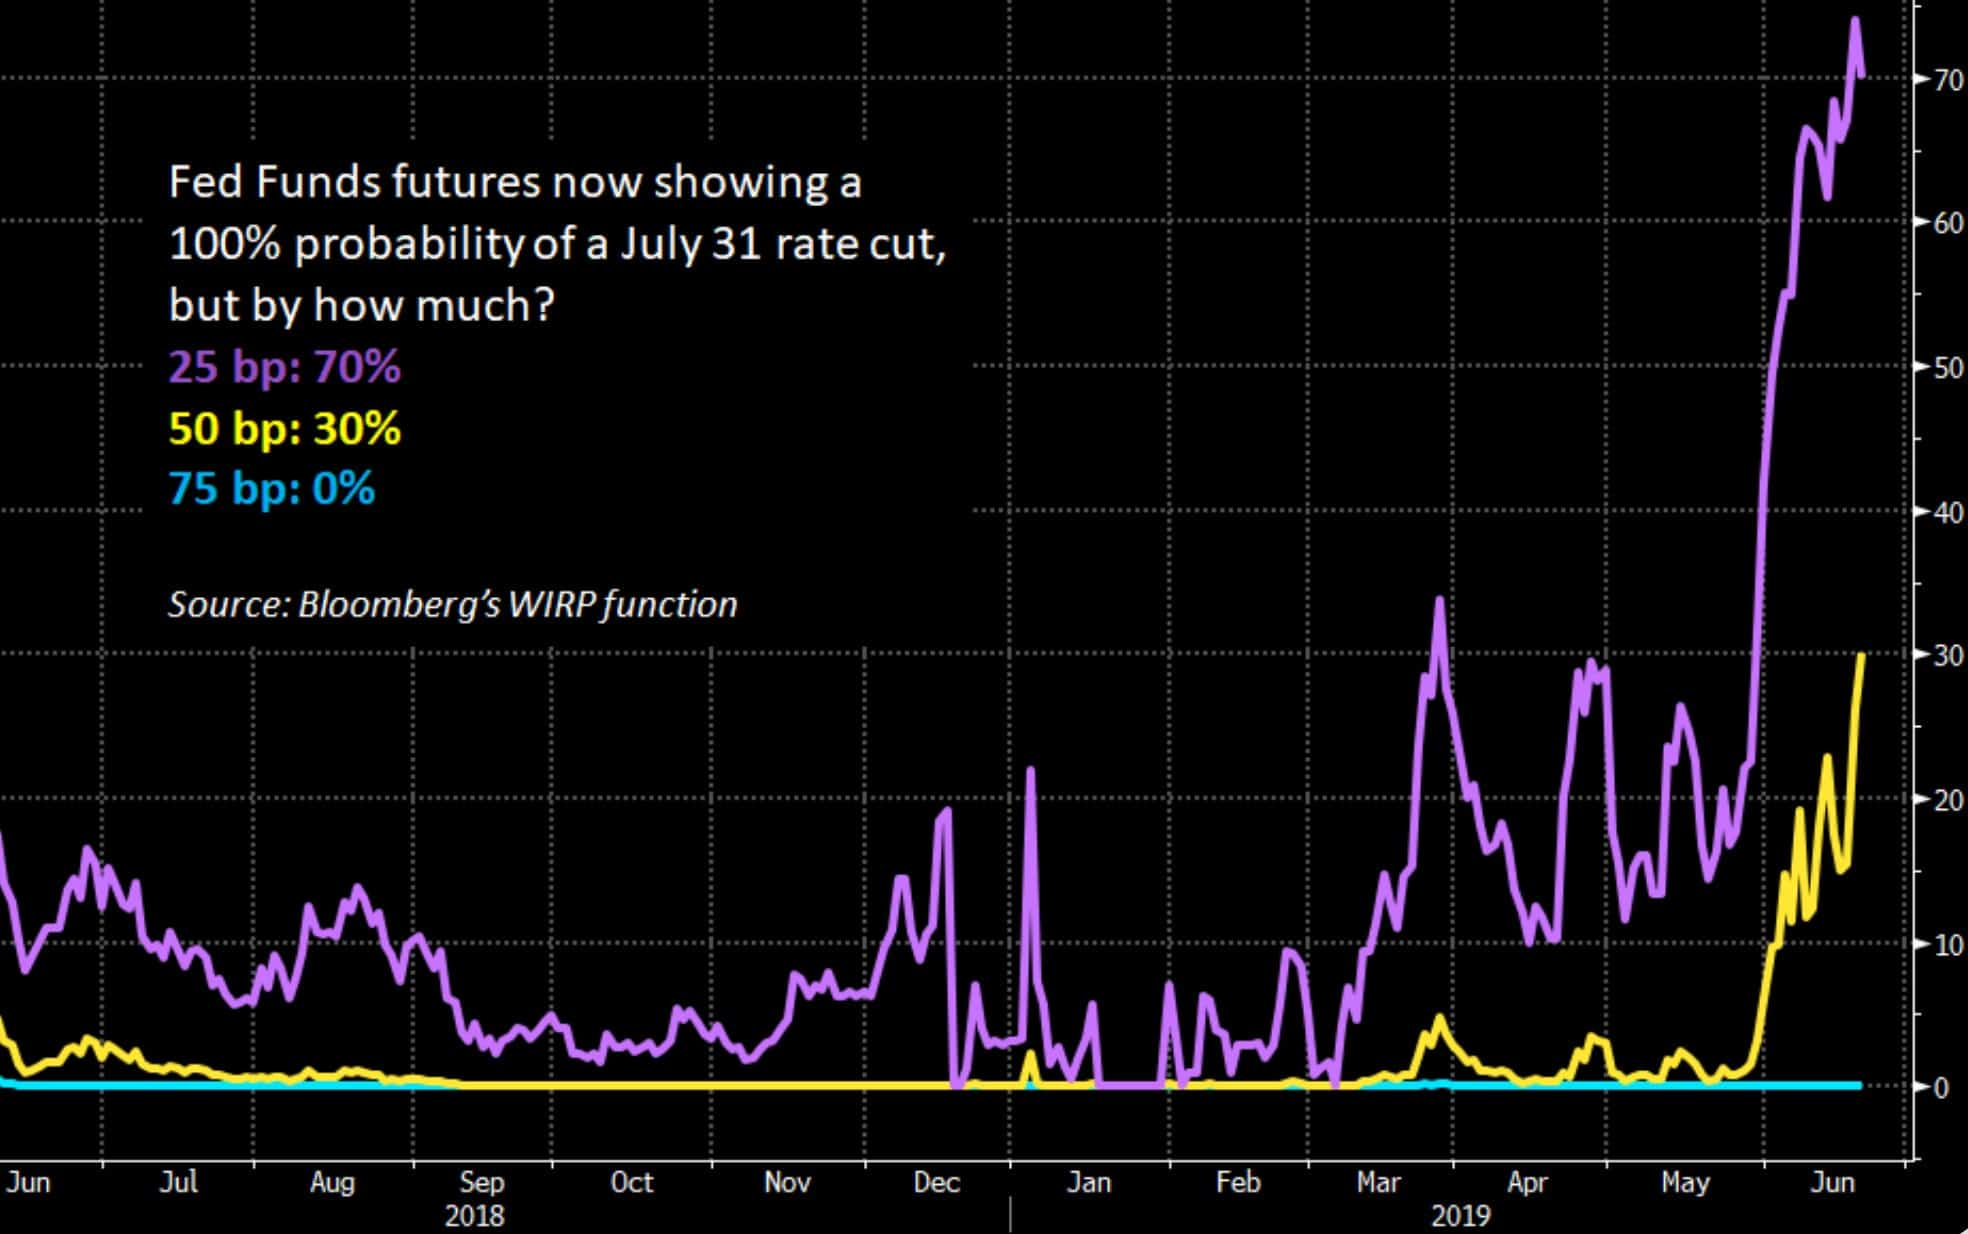 rate-cut-probability-fed-funds